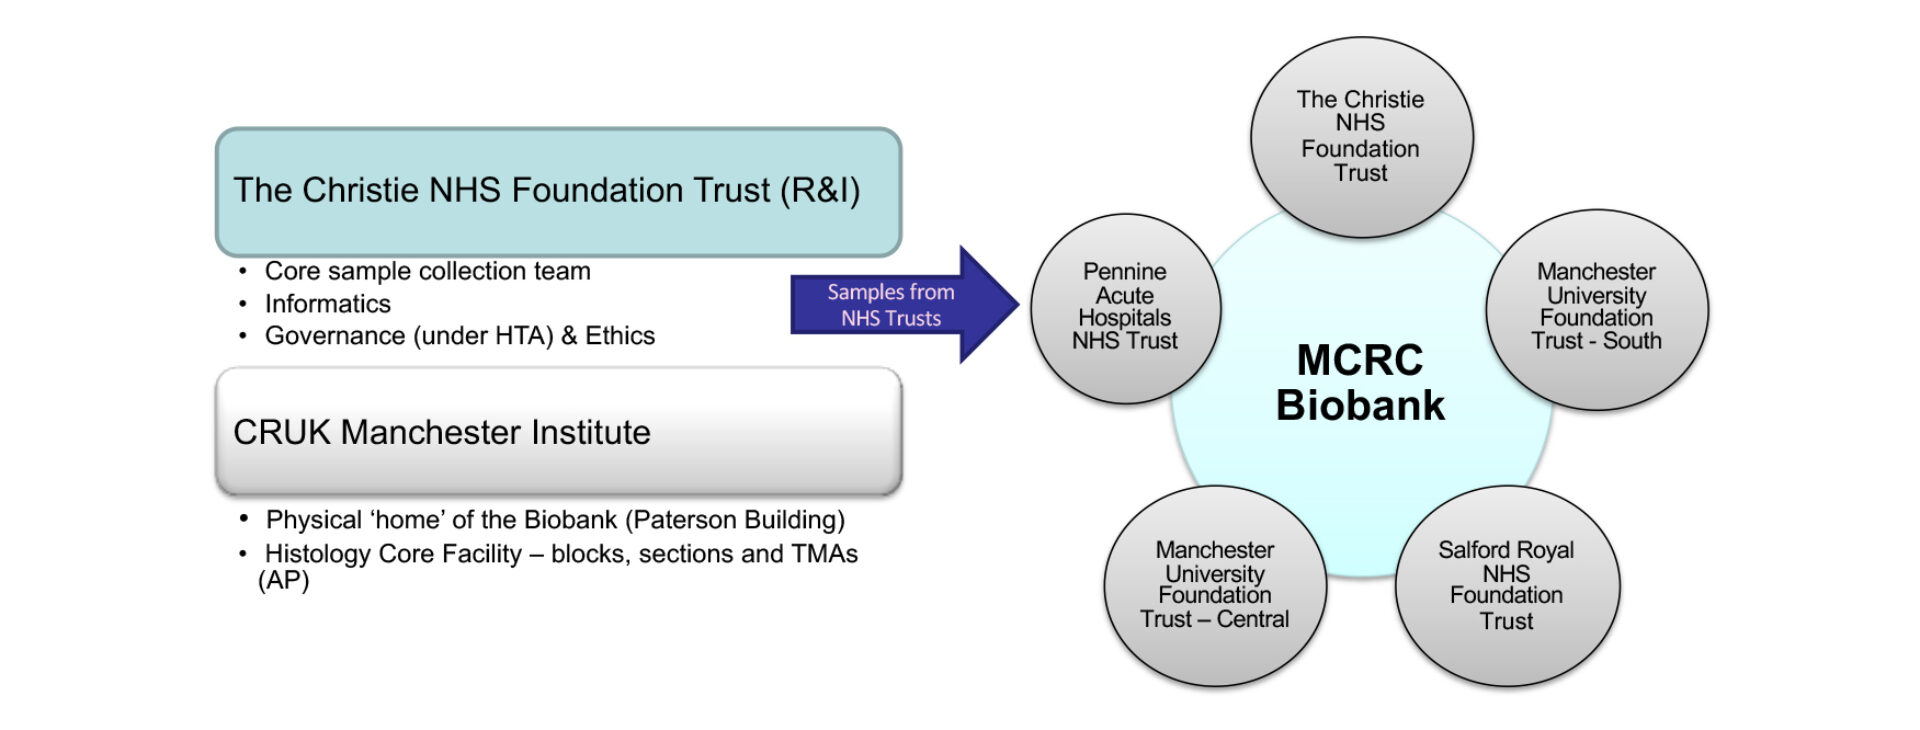 Operations of the MCRC biobank, with samples from The Christie stored in the biobank for use in the five other Biobank trusts.